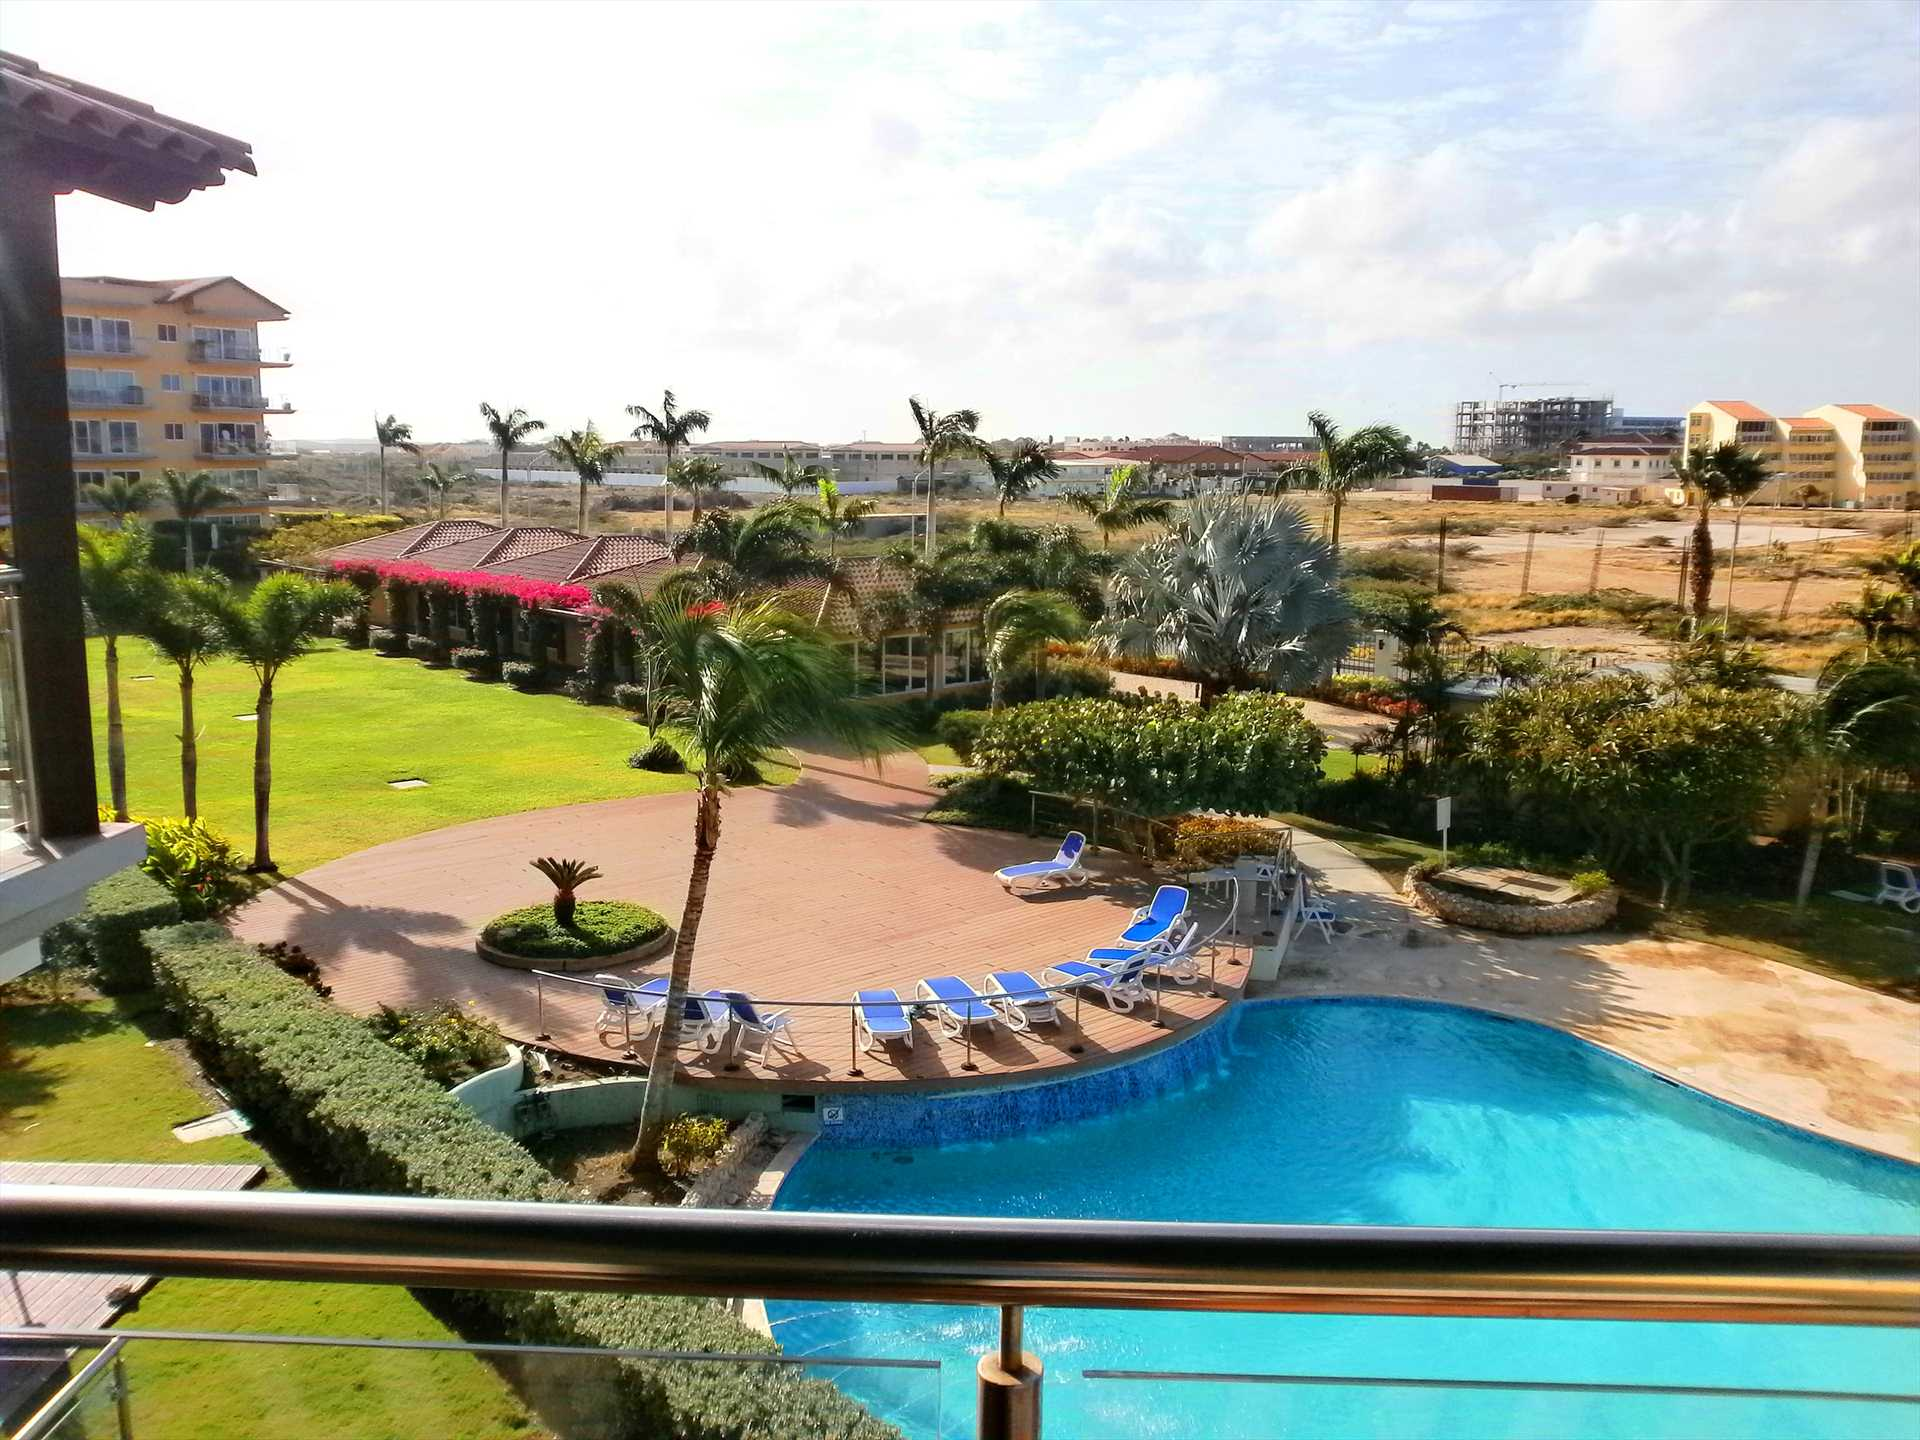 Overlooking one of the swimming pool area of Oceania.